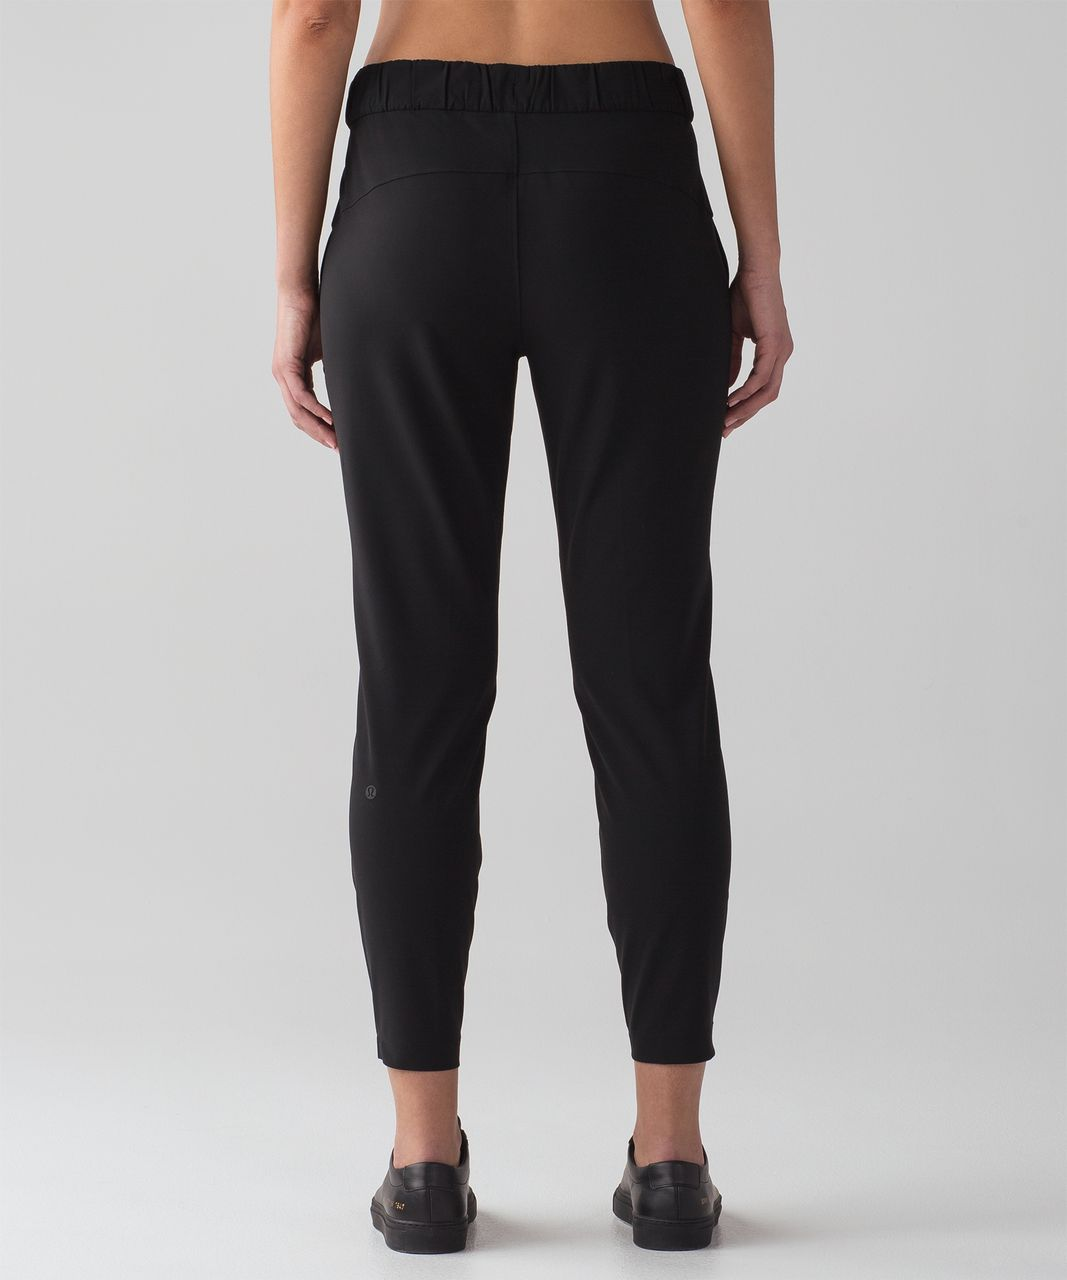 d9c5df0d3 Lululemon On The Fly Pant  Woven 28